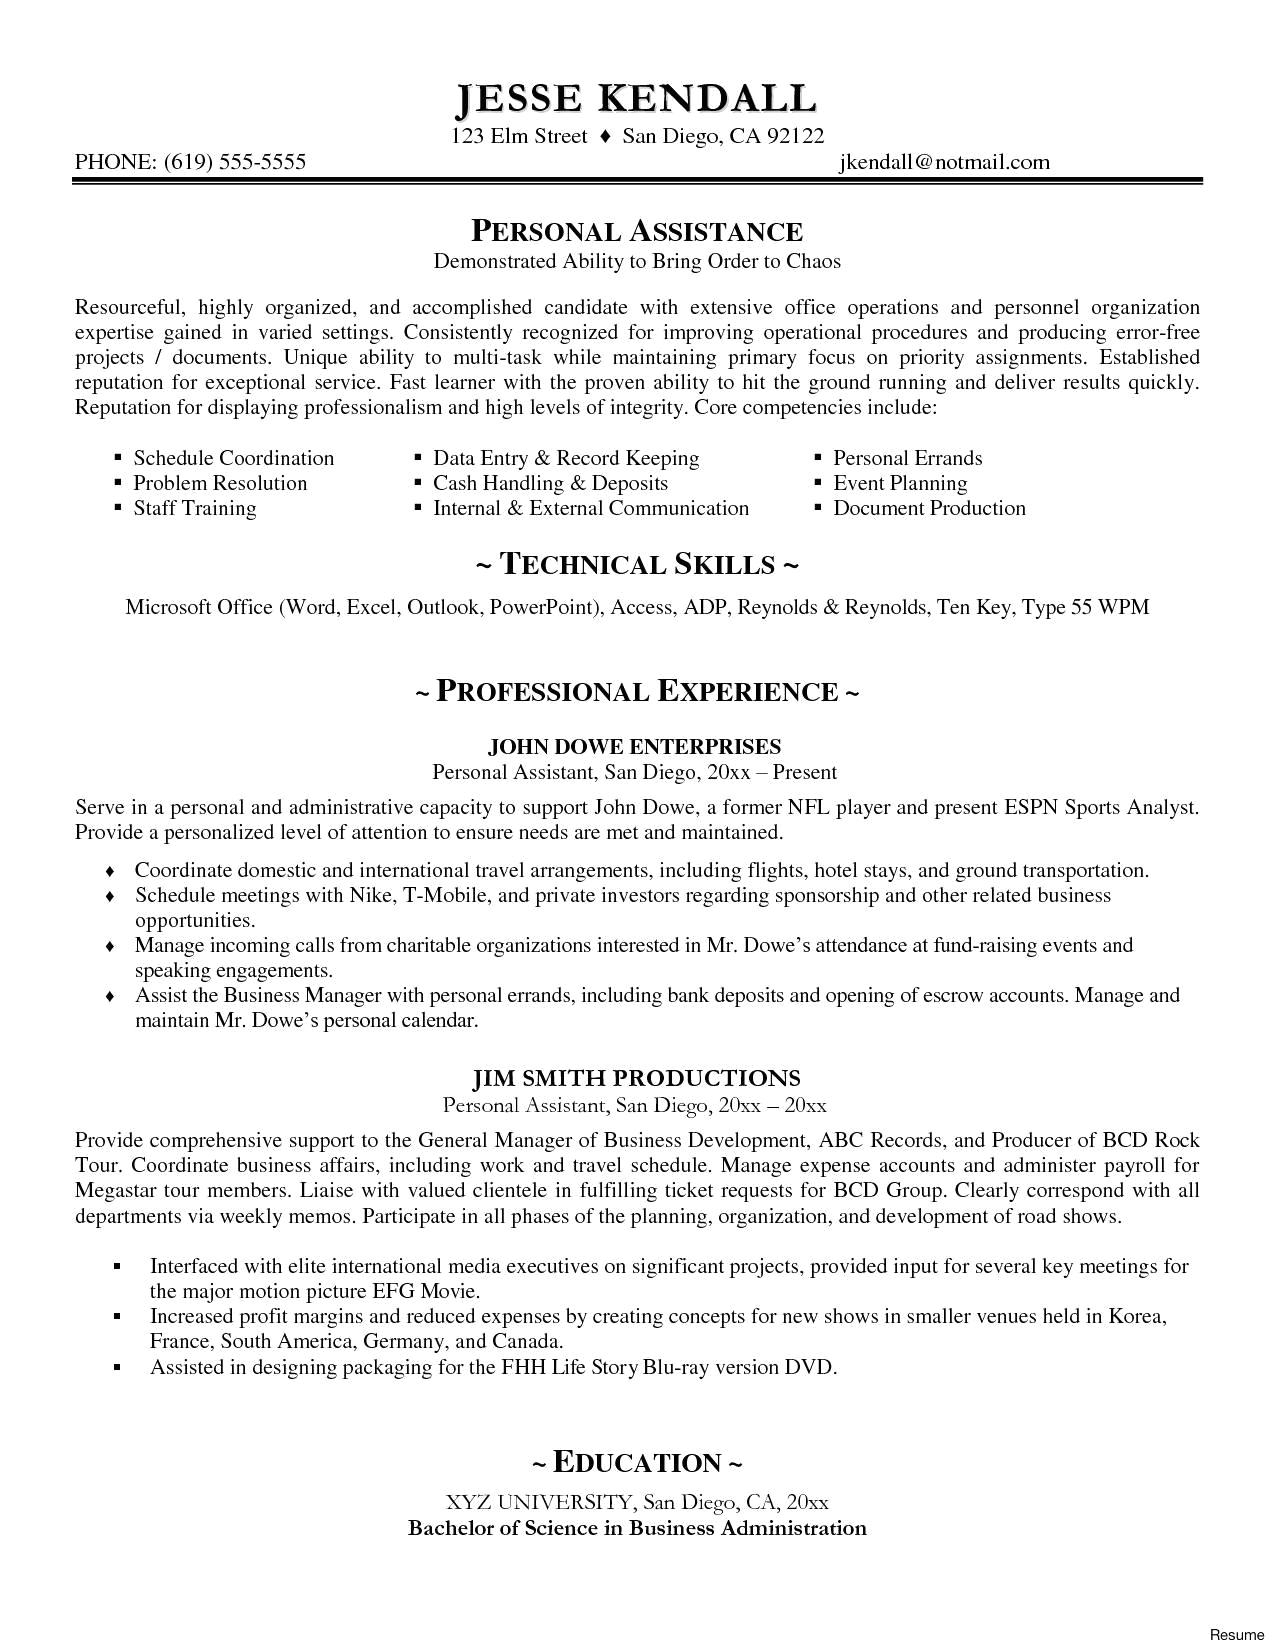 Fox School Of Business Resume Template - Fox School Business Resume Template Business Cards Ideas